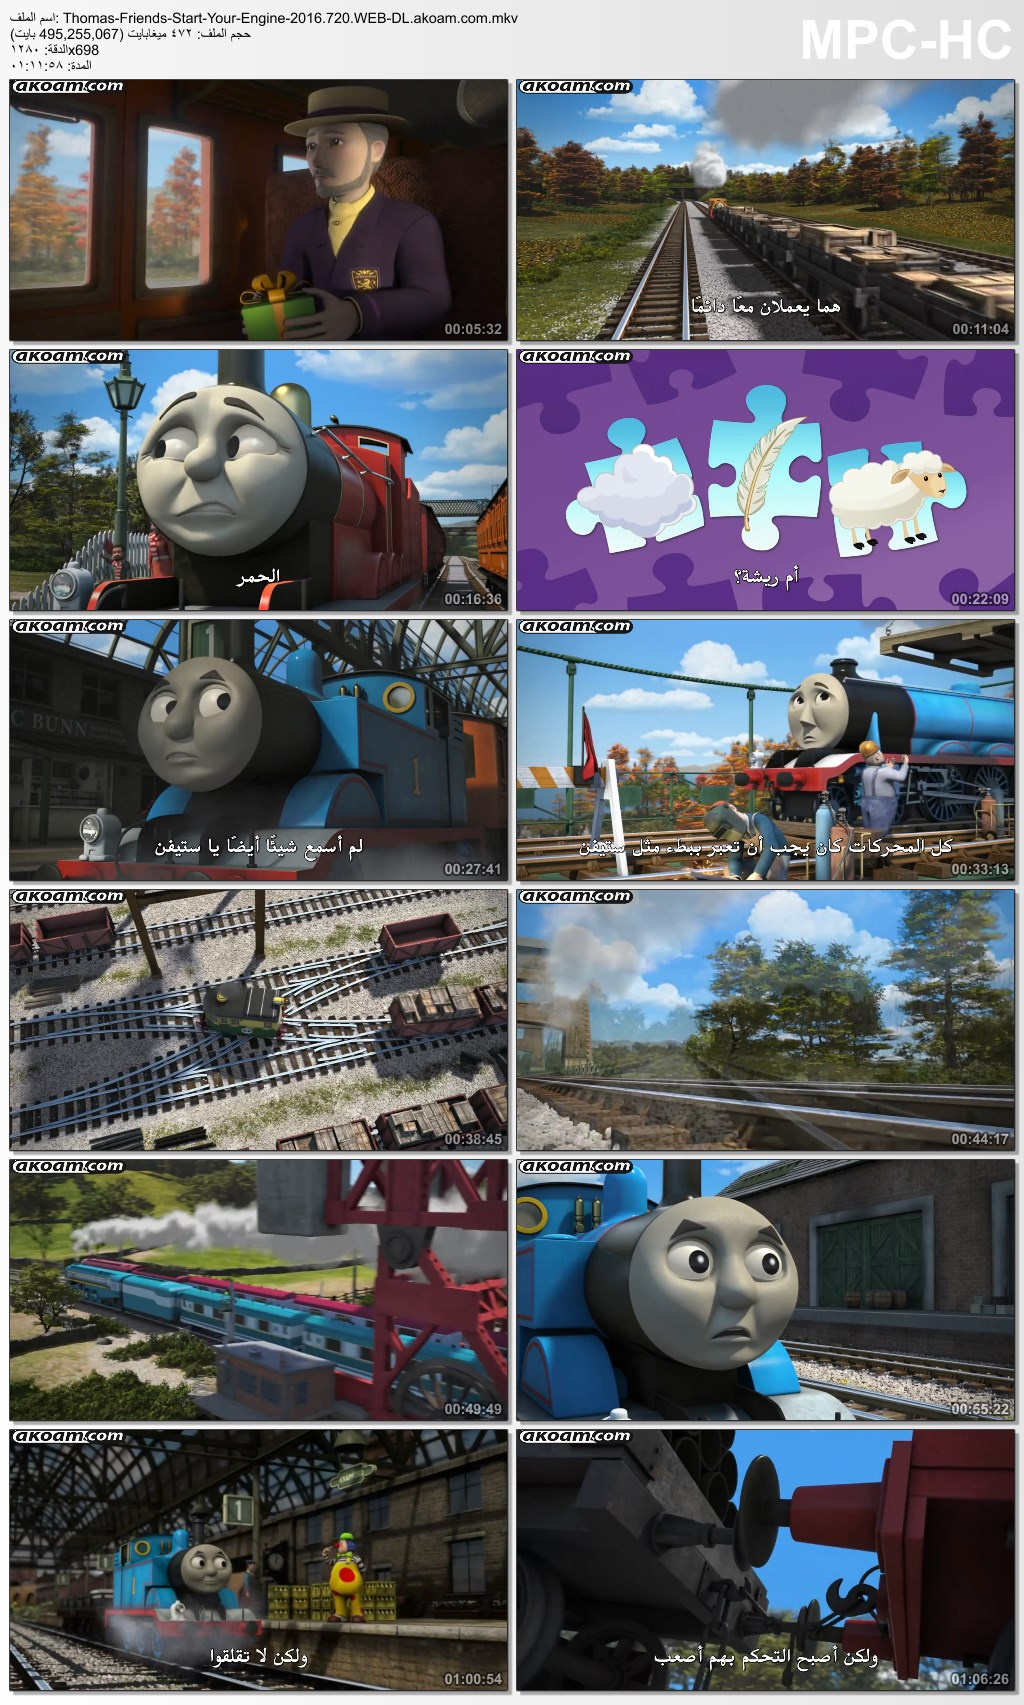 Thomas & Friends: Start Your Engines,الانمي,الانيميشن,المغامرات,العائلي,Thomas Friends Start Your Engine